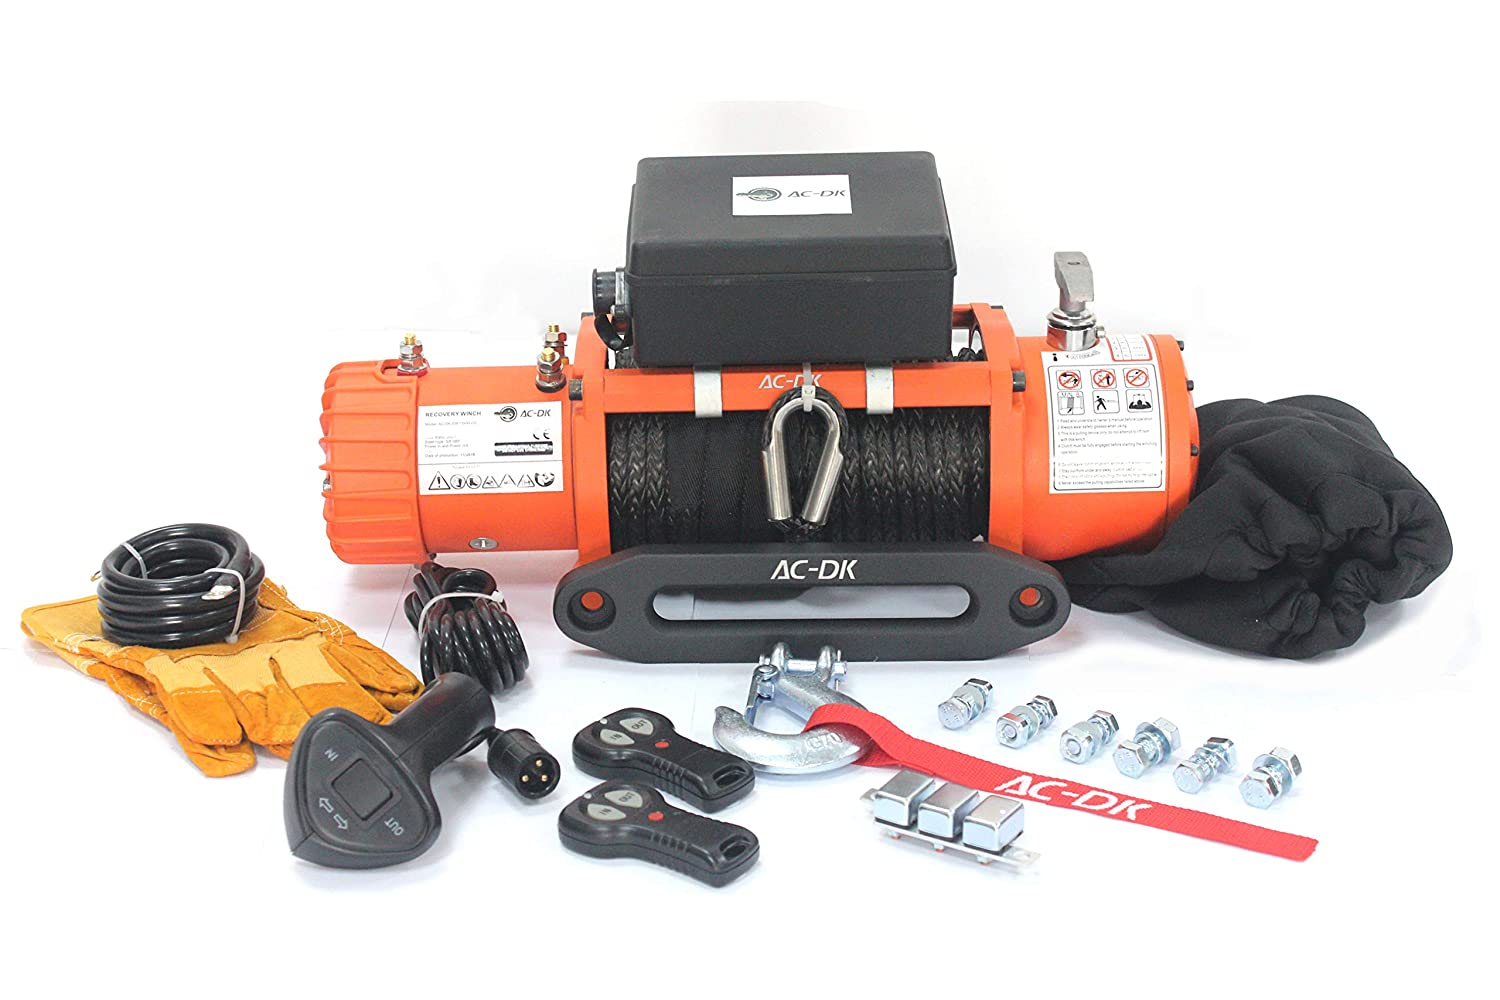 with 2 Wireless Recovery- Off Road with Synthetic Rope AC-DK 12V DC 12500lbs Stainless Steel/&Synthetic Rope Electric Winch